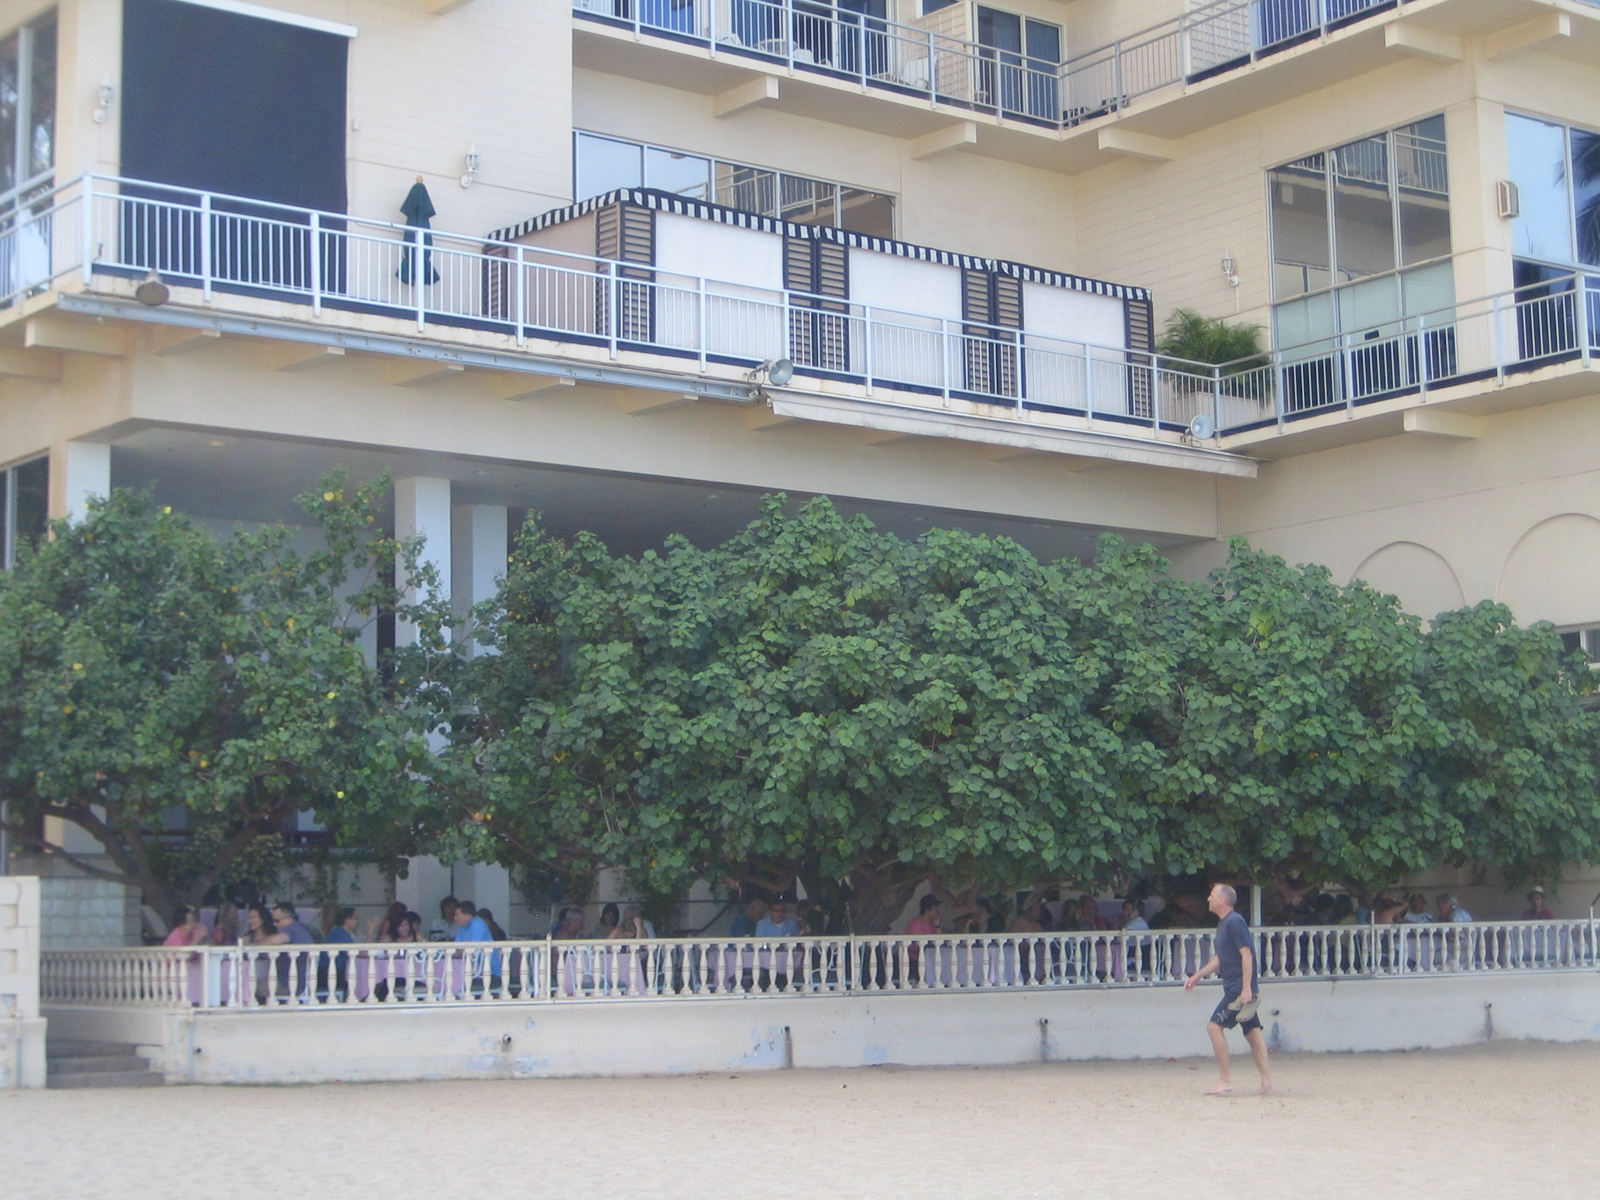 Considering how lovely the view was from the restaurant, I was surprised at how wholly the tree covers the place when viewed from the beach.